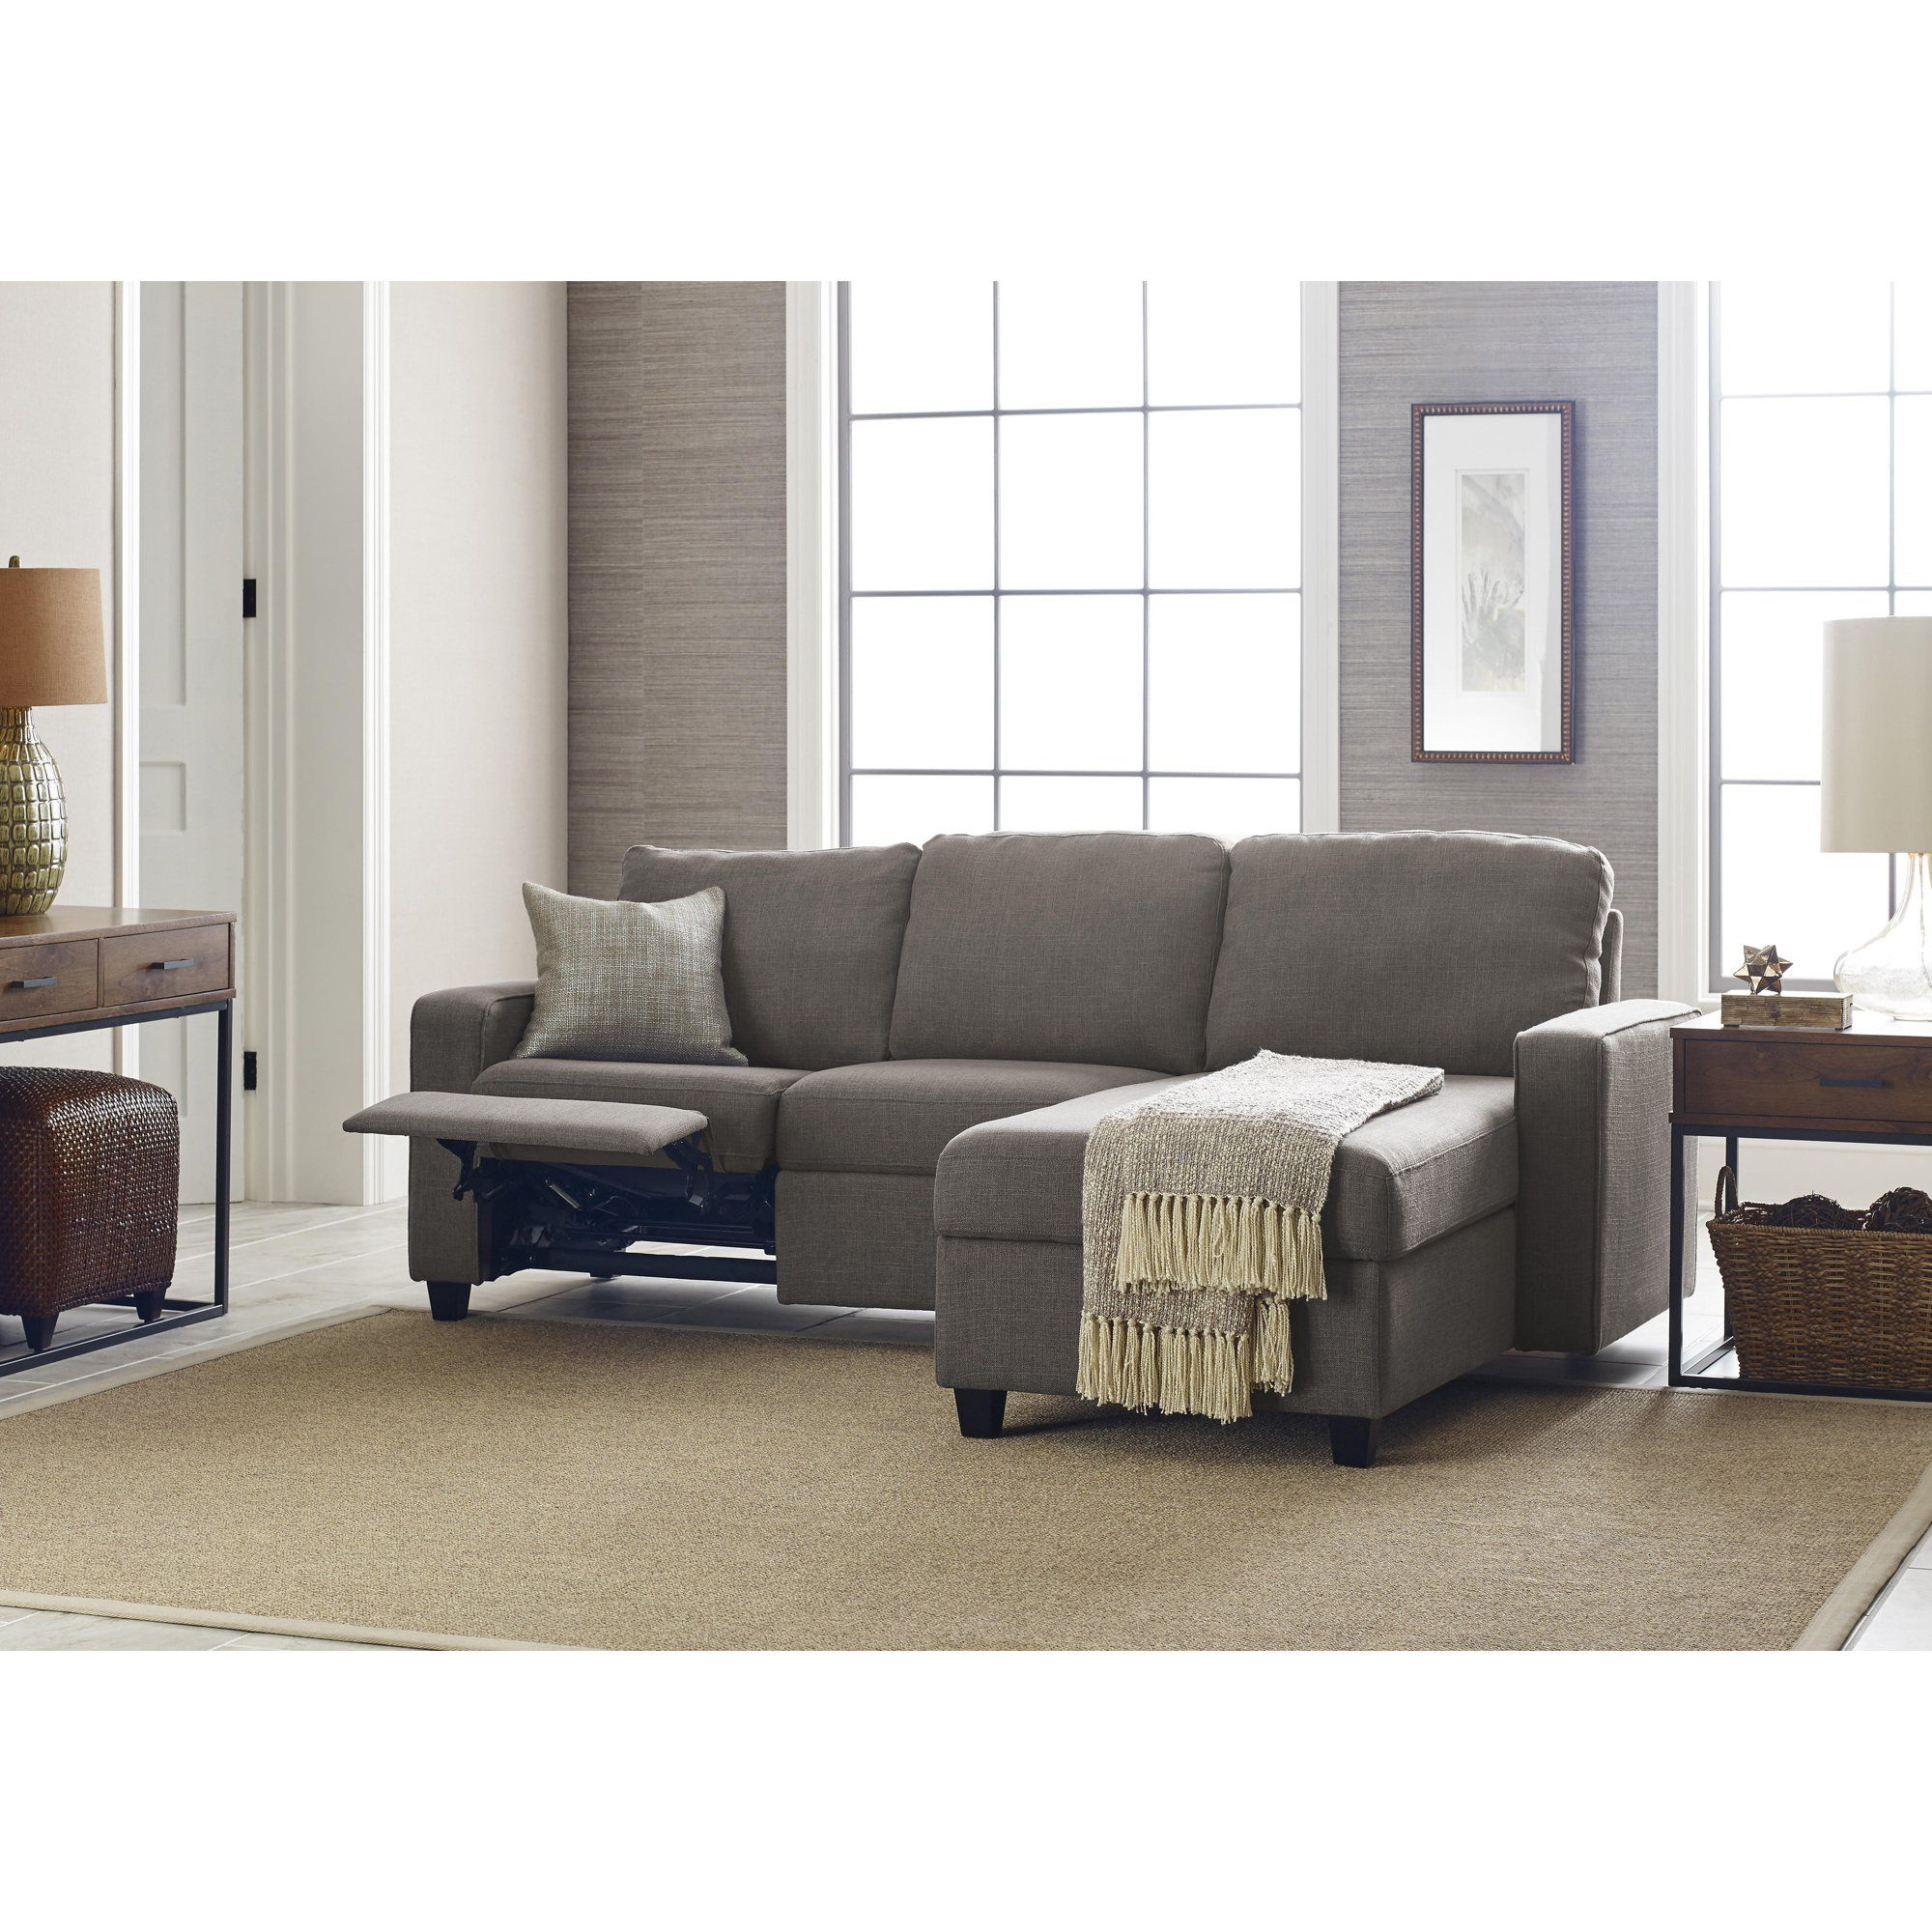 Serta Palisades Reclining Sectional With Right Storage Within Copenhagen Reclining Sectional Sofas With Right Storage Chaise (View 4 of 15)